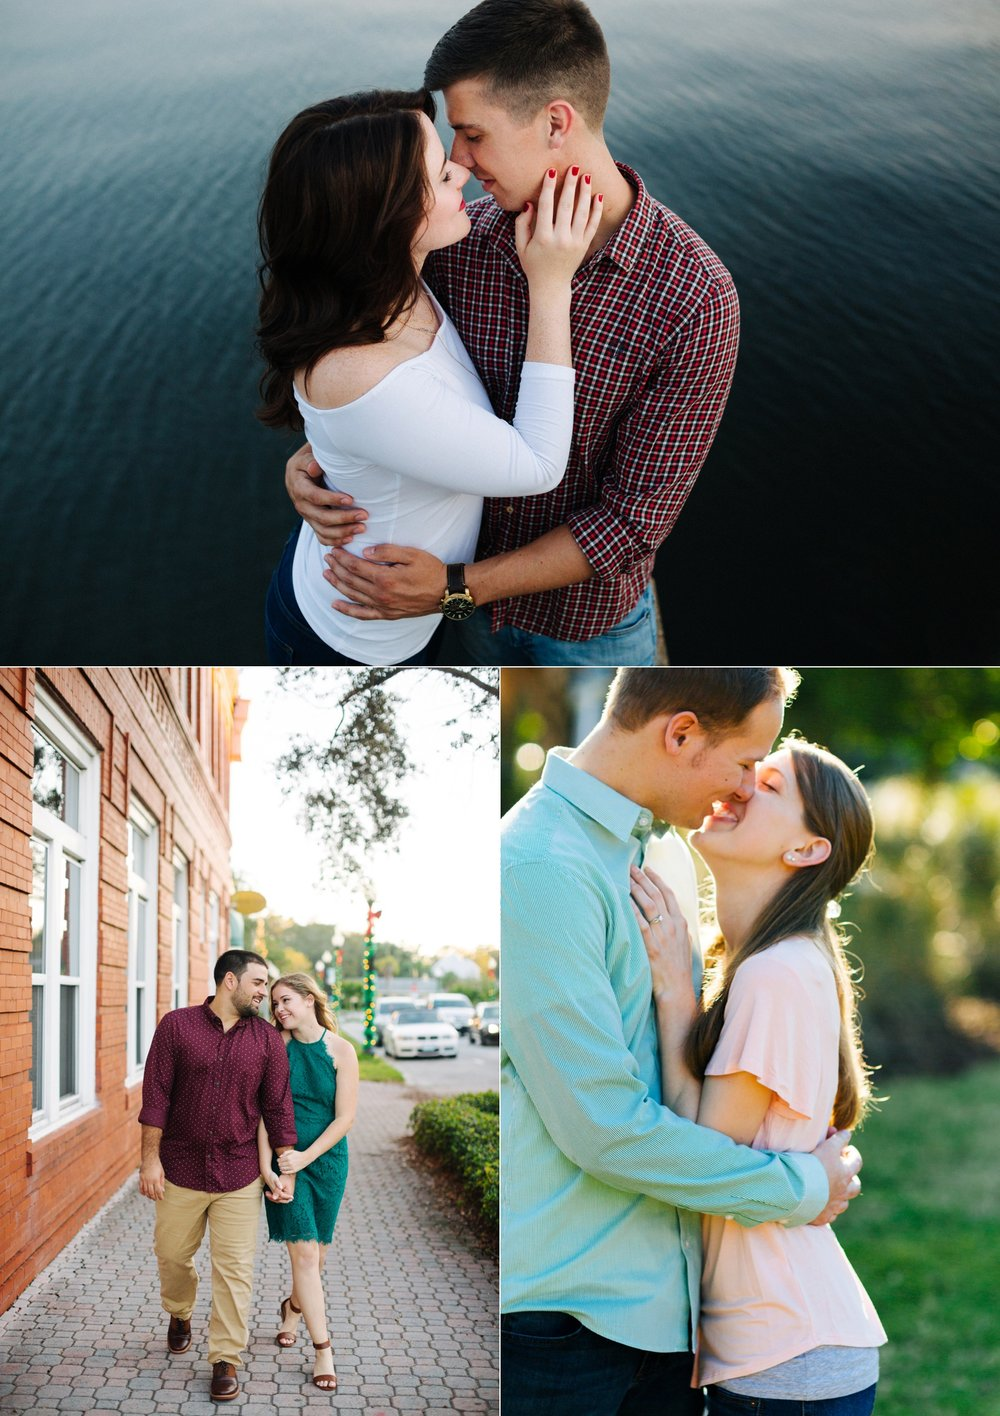 Jake & Katie Photography Best of Couples 2016-018.jpg